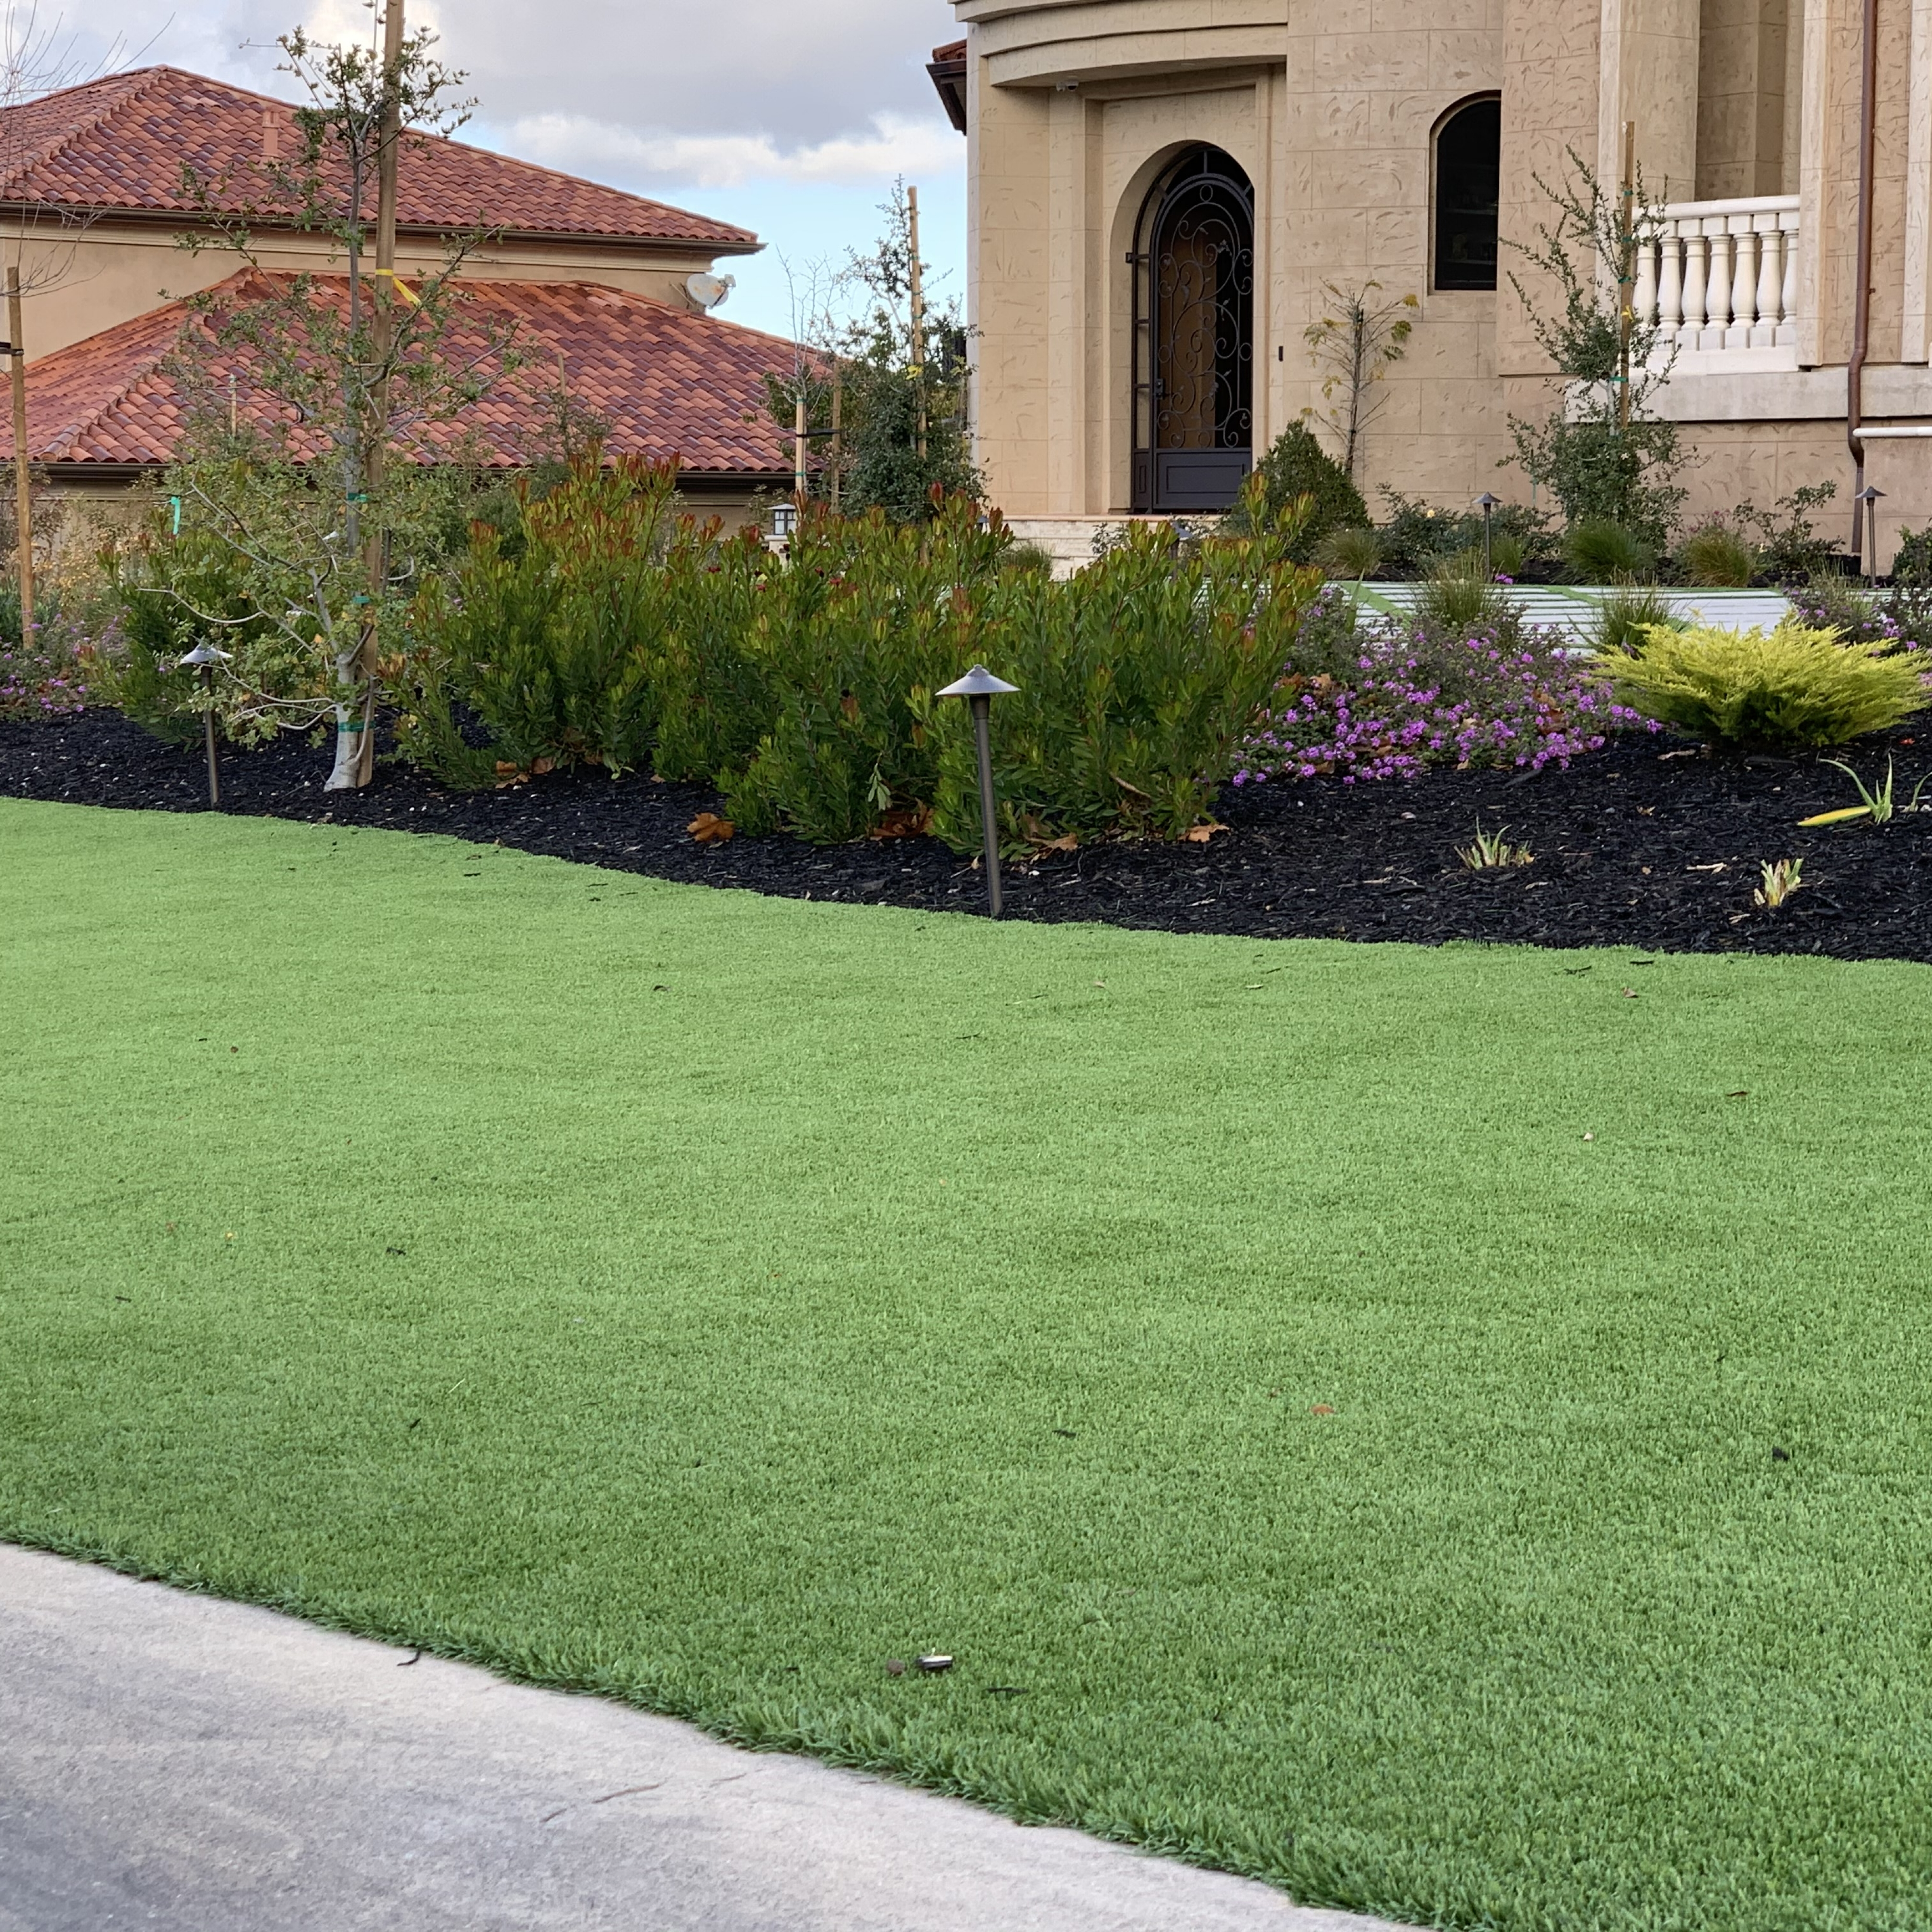 S Blade-90 artificial turf,synthetic turf,artificial turf installation,how to install artificial turf,used artificial turf,artificial grass installers,artificial turf installers,artificial turf,synthetic turf,artificial turf installation,how to install artificial turf,used artificial turf,artificial turf companies,most realistic artificial grass,artificial grass,fake grass,synthetic grass,grass ca